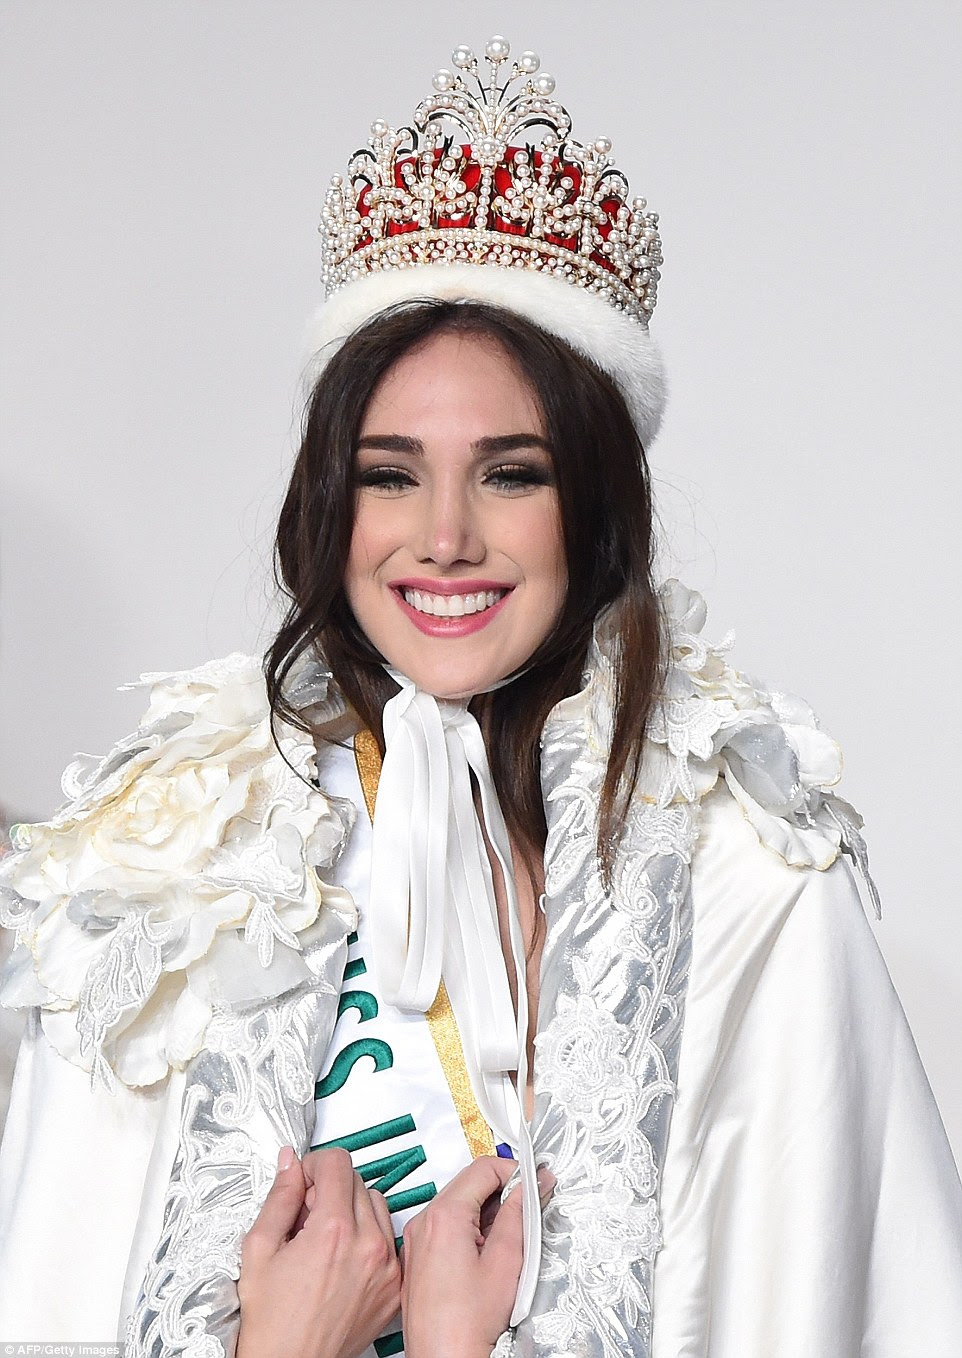 Miss Venezuela Edymar Martinez fended off competition from beauties from 70 countries and regions across the globe to be crowned Miss International 2015 (pictured)